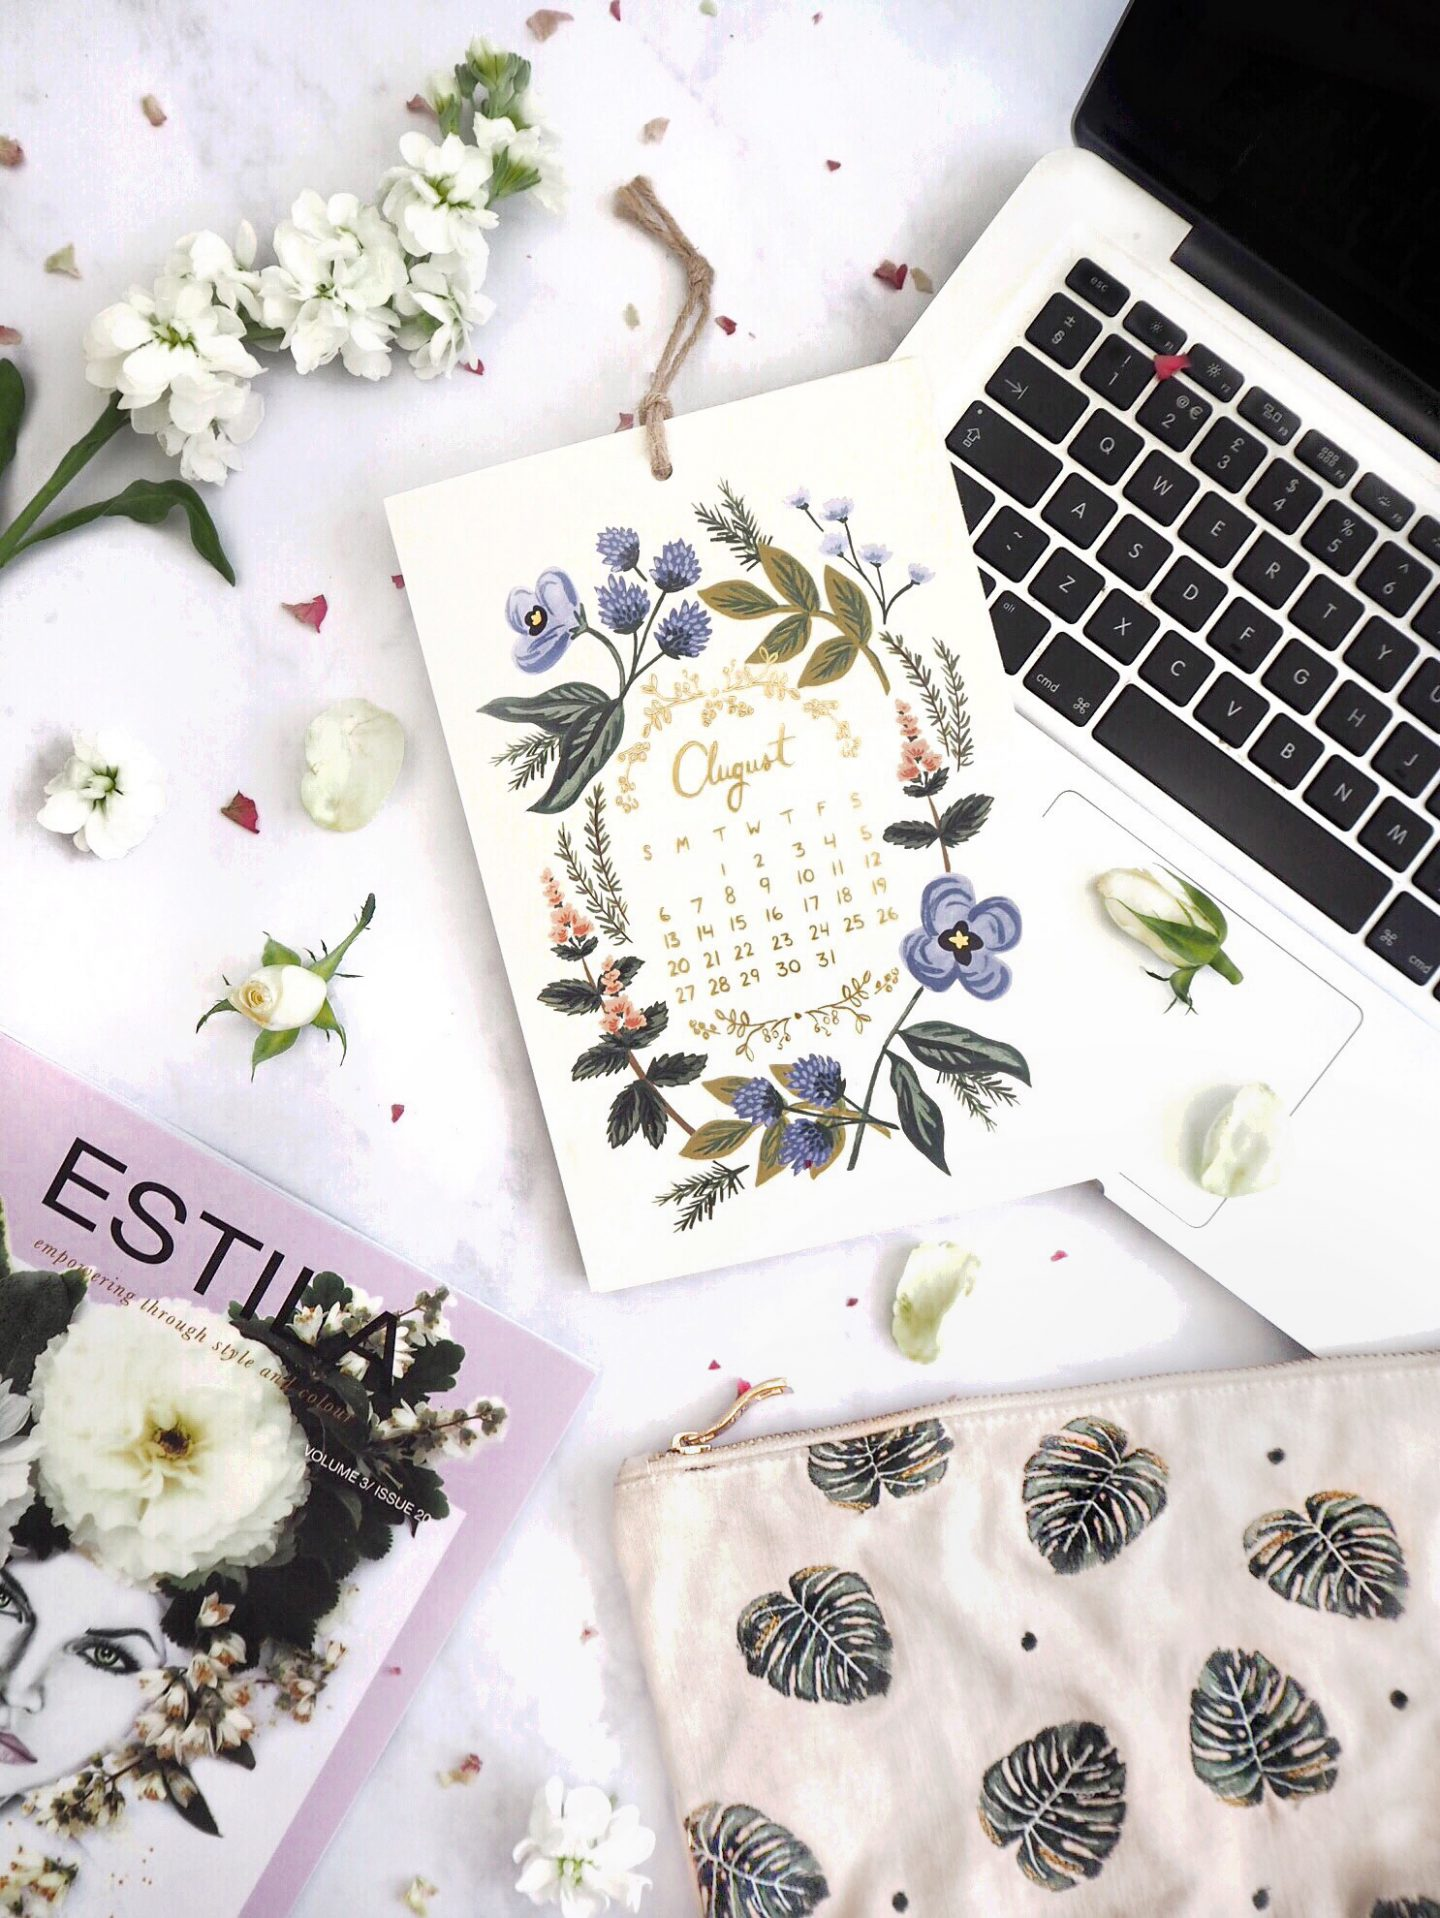 5 Things For My August To Do List